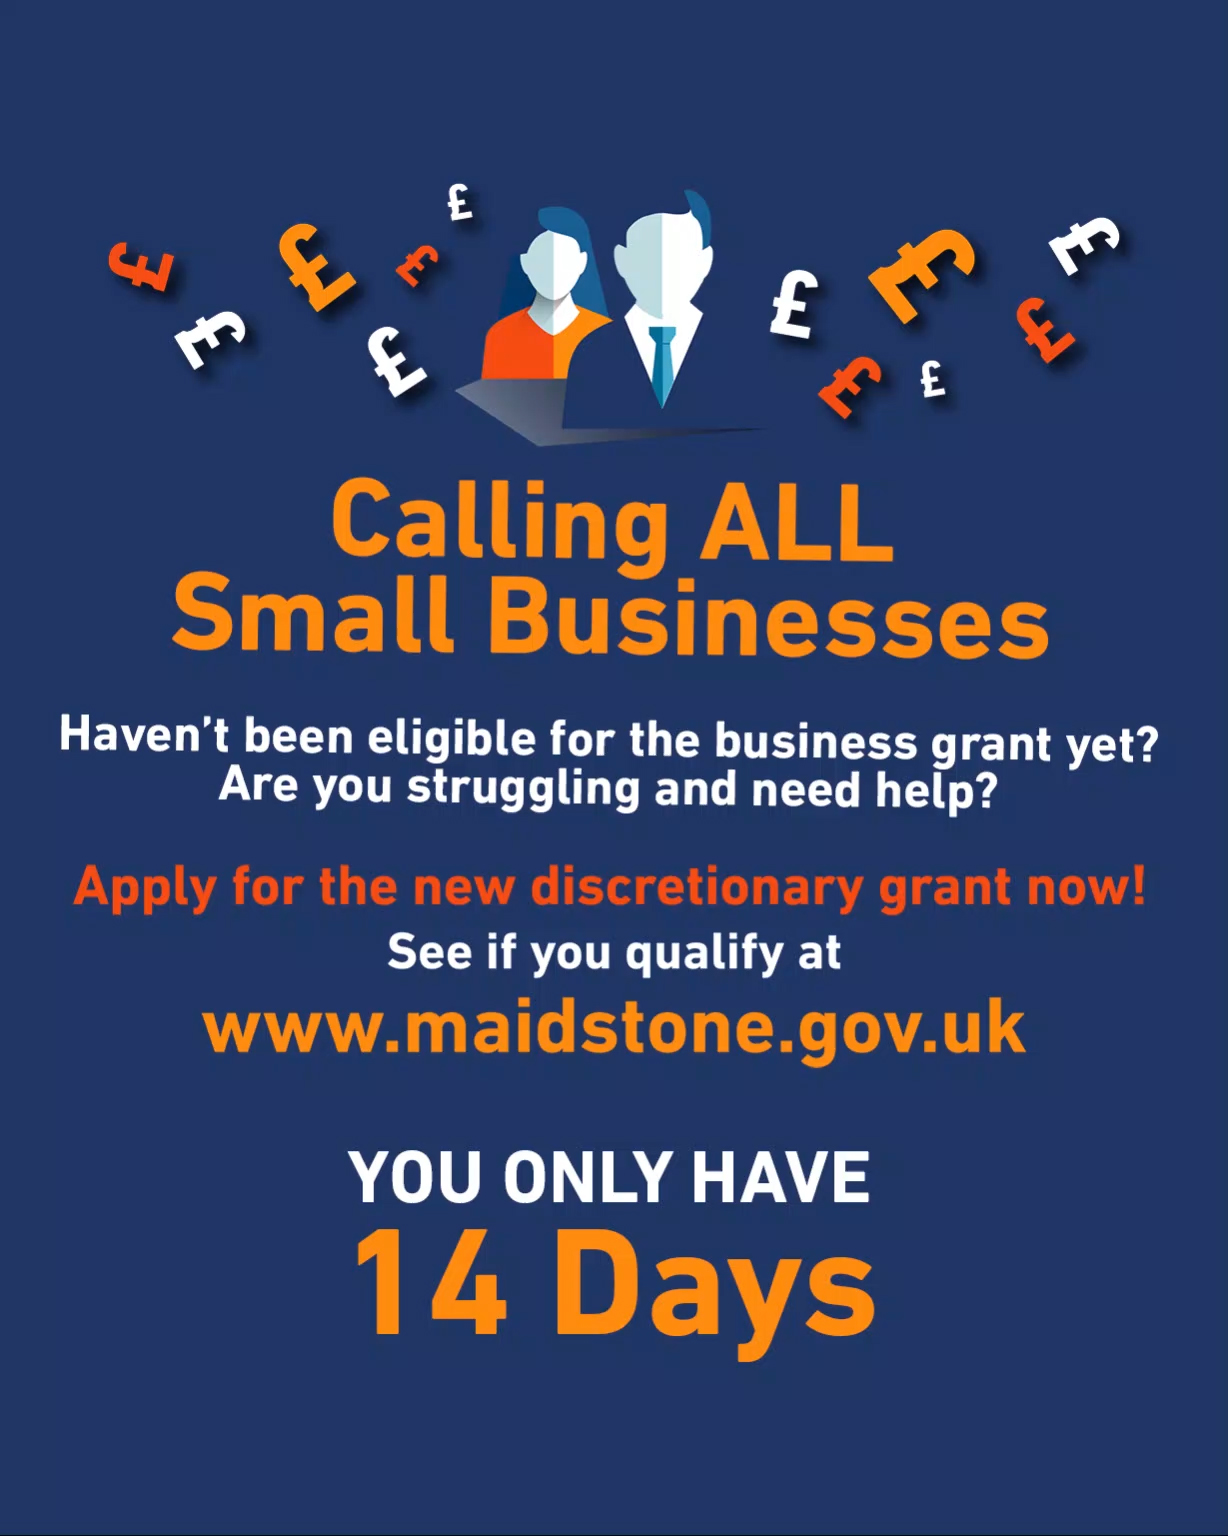 Don't delay – Just 14 days to apply for business grant   image